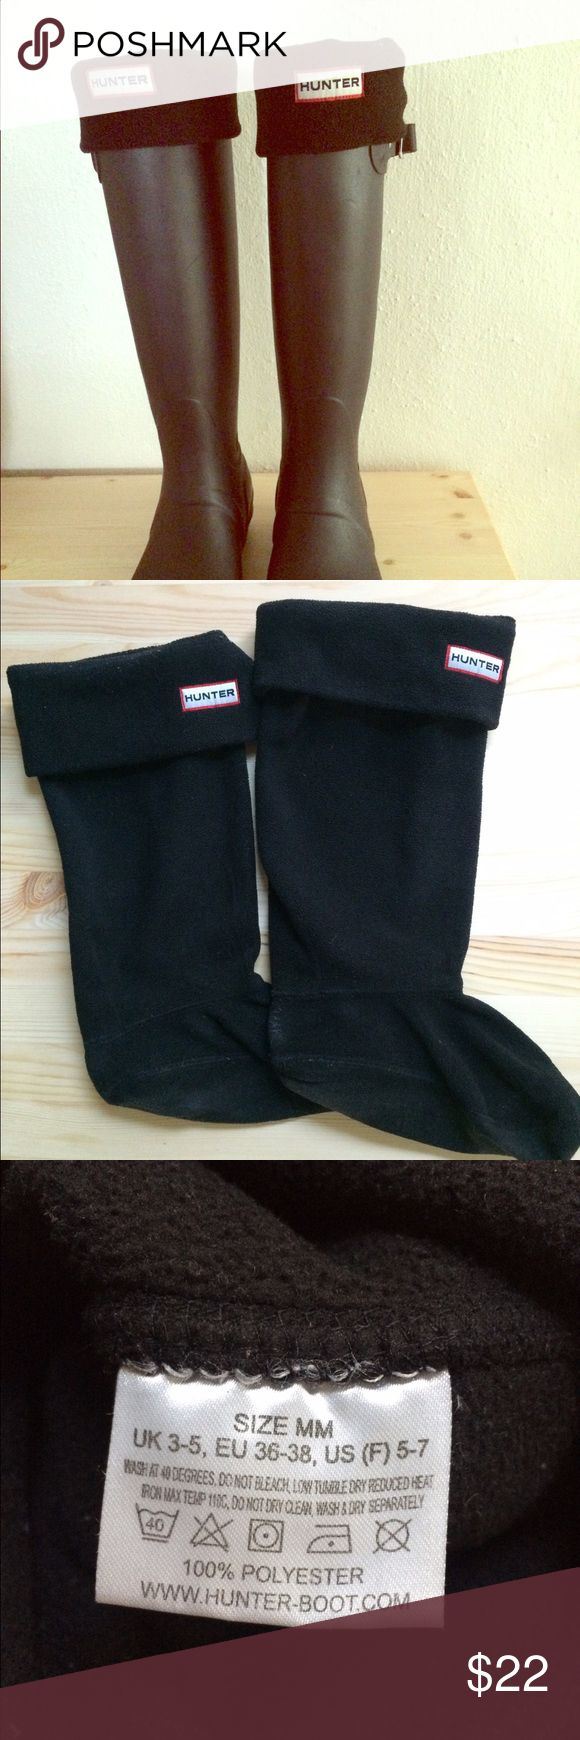 Hunter Welly Socks Supersoft fleece is fashioned into a cozy boot sock designed to add warmth and comfort to your favorite footwear. For Hunter 'Original Tall' rain boots. 100% polyester; machine wash warm, tumble dry low. Hunter Boots Accessories